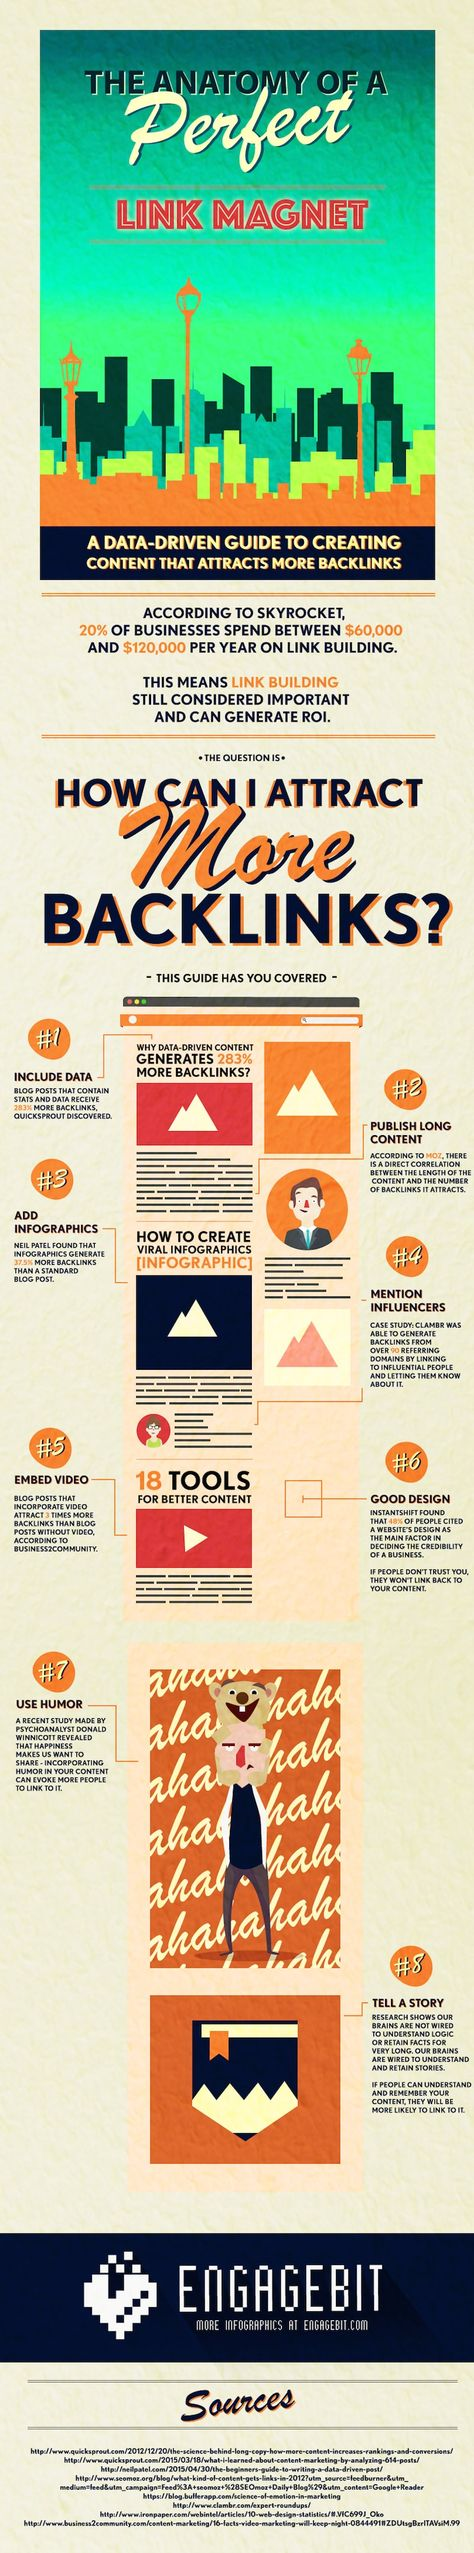 Want to Attract Links to Your Website? Try These 8 Data-Driven Tips [Infographic]